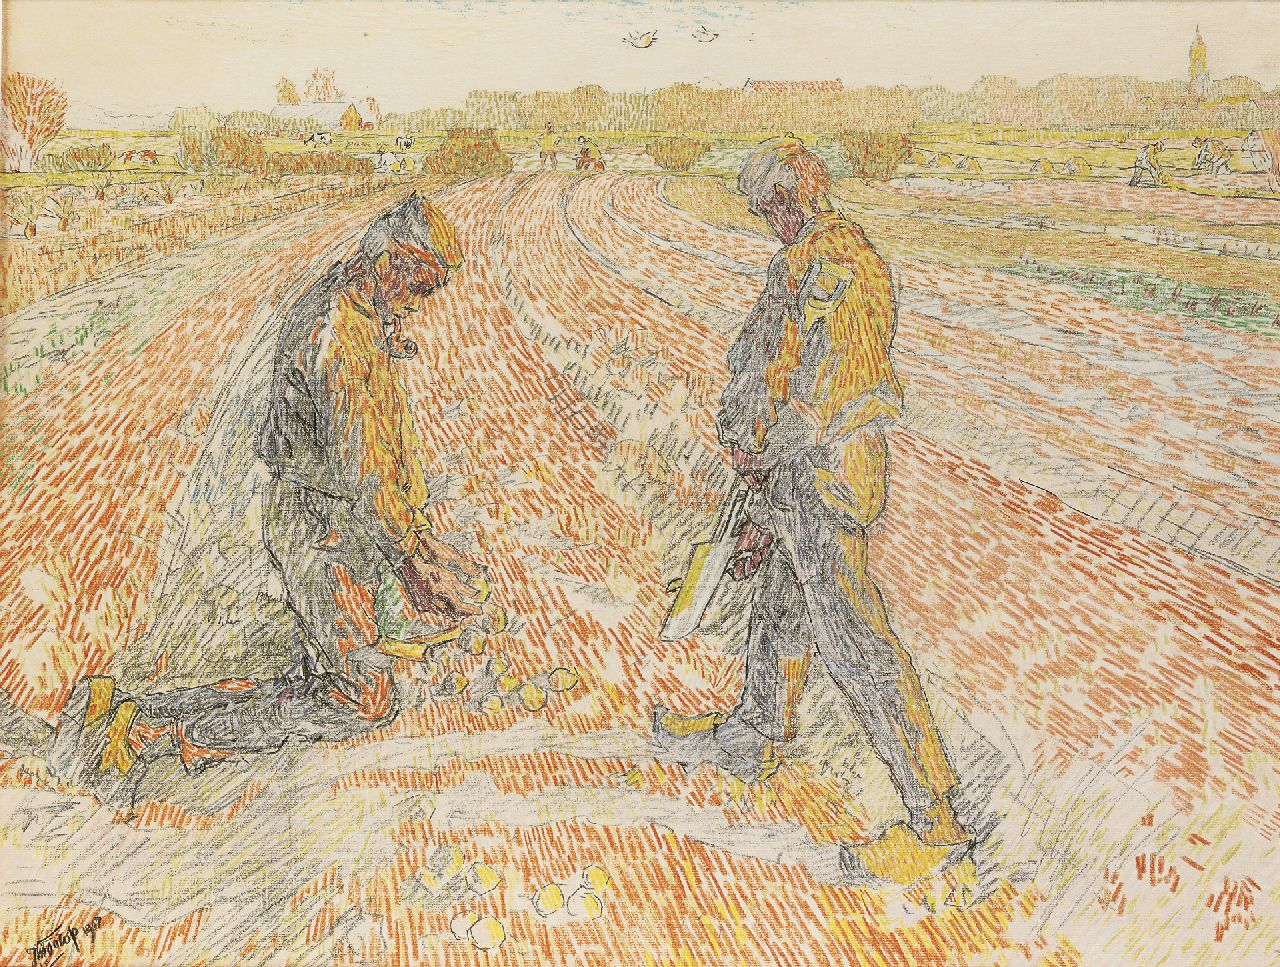 Toorop J.Th.  | Johannes Theodorus 'Jan' Toorop, Gathering potatoes, pencil and coloured chalk on paper 47.9 x 62.2 cm, signed l.l. and dated 1907